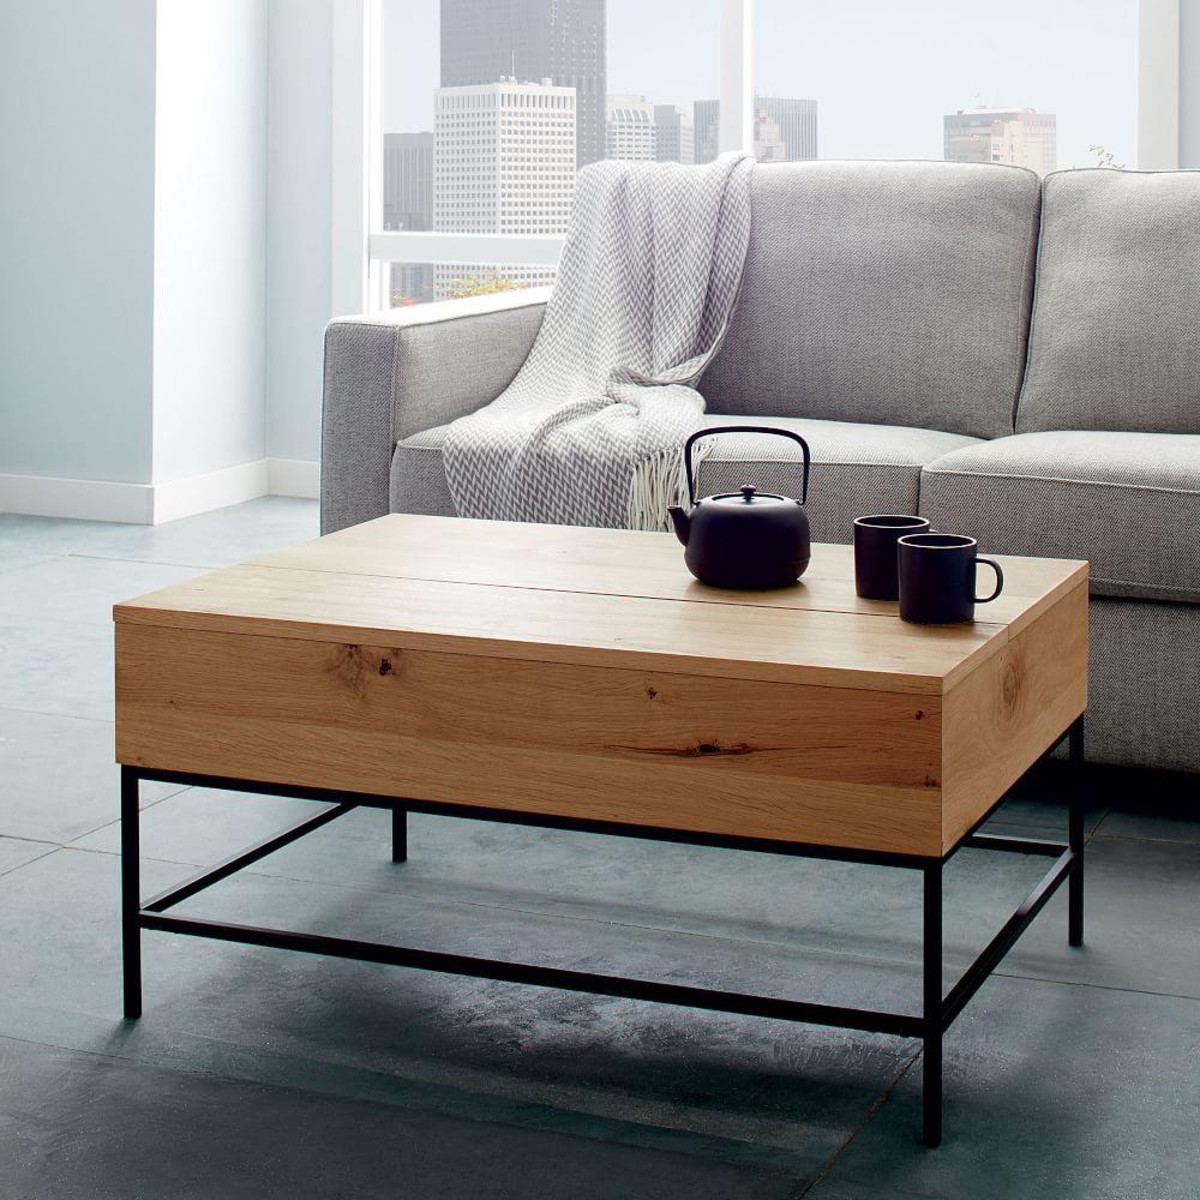 Best ideas about Coffee Tables With Storage . Save or Pin Industrial Storage Coffee Table Now.